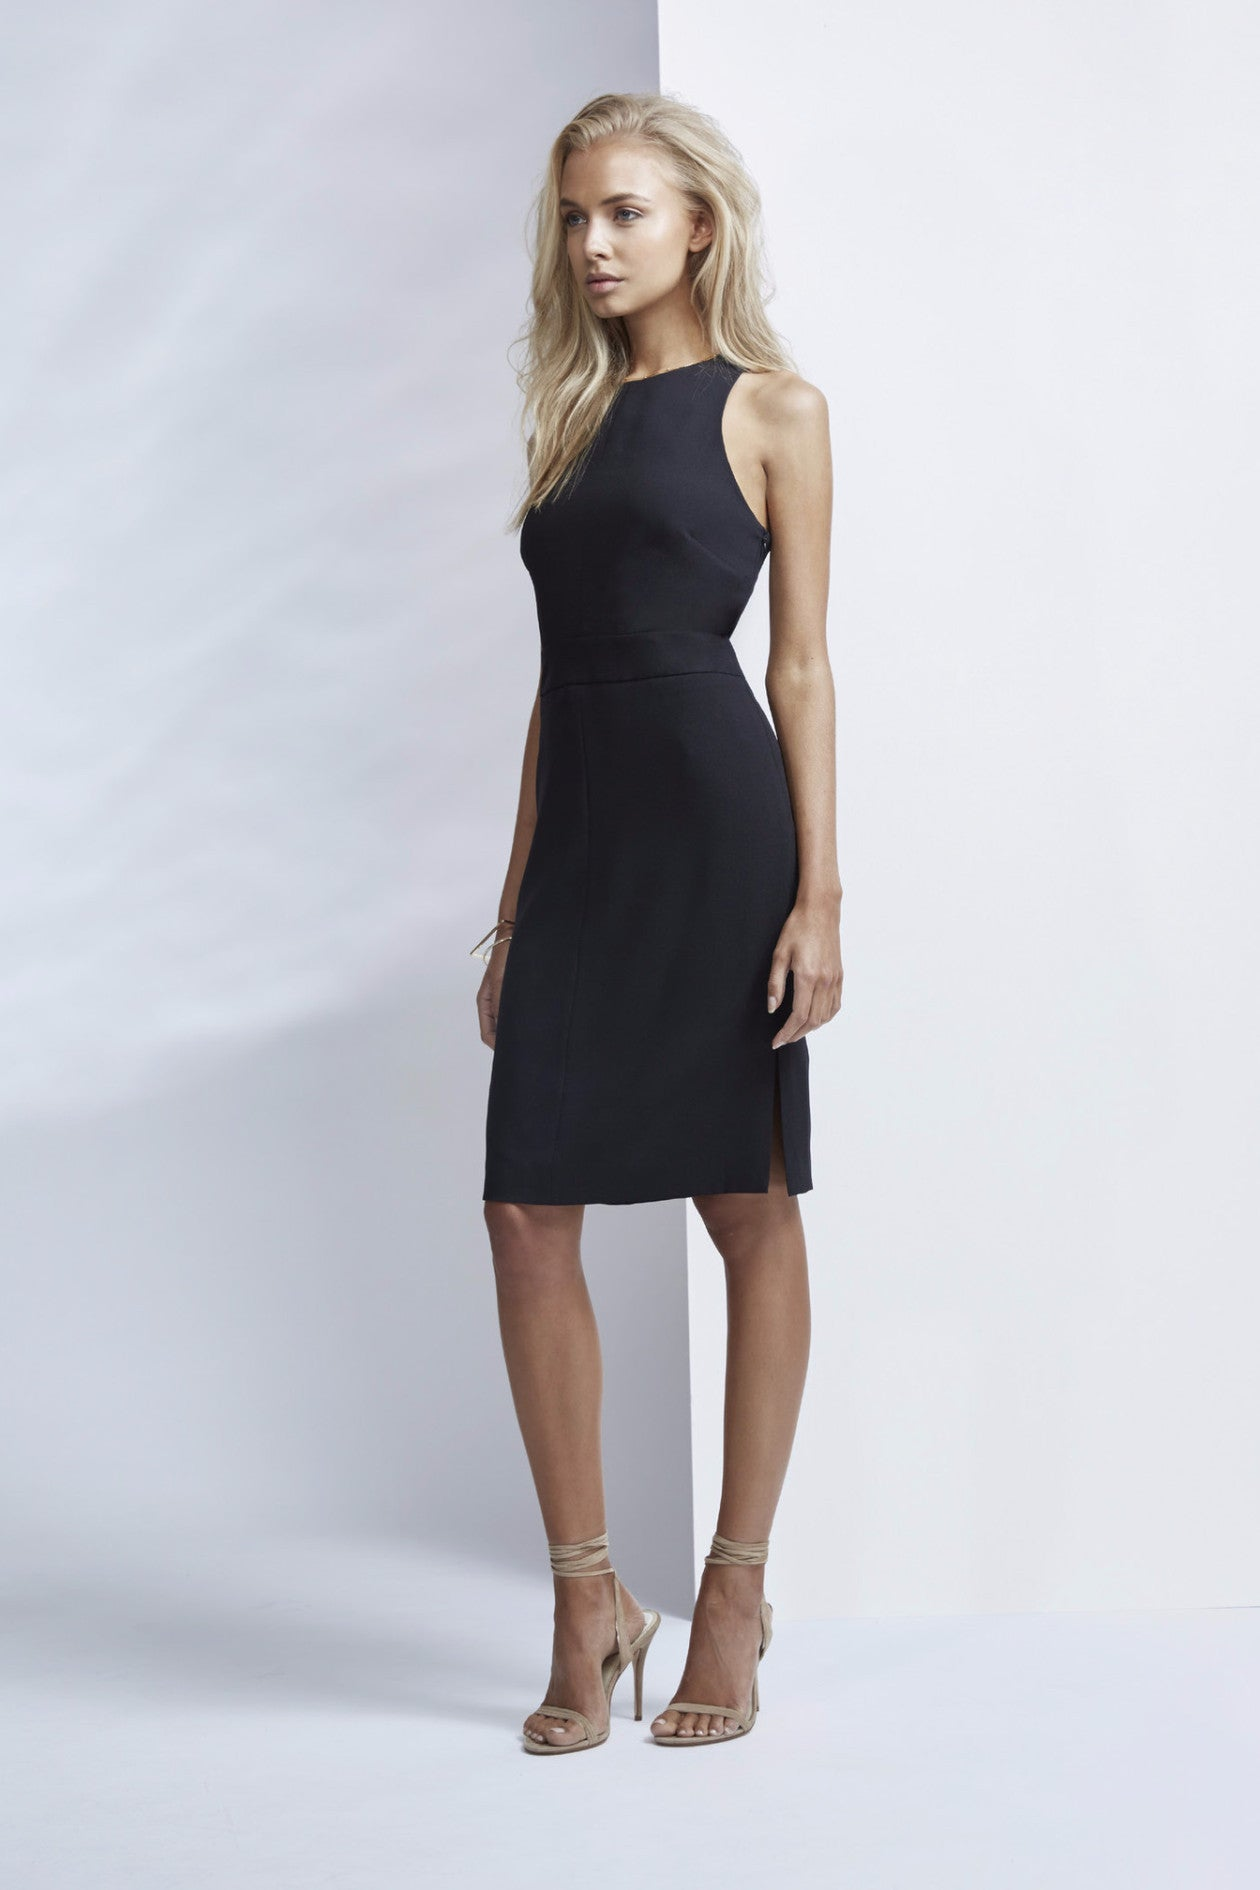 Finders Keepers Frazer Dress - Black